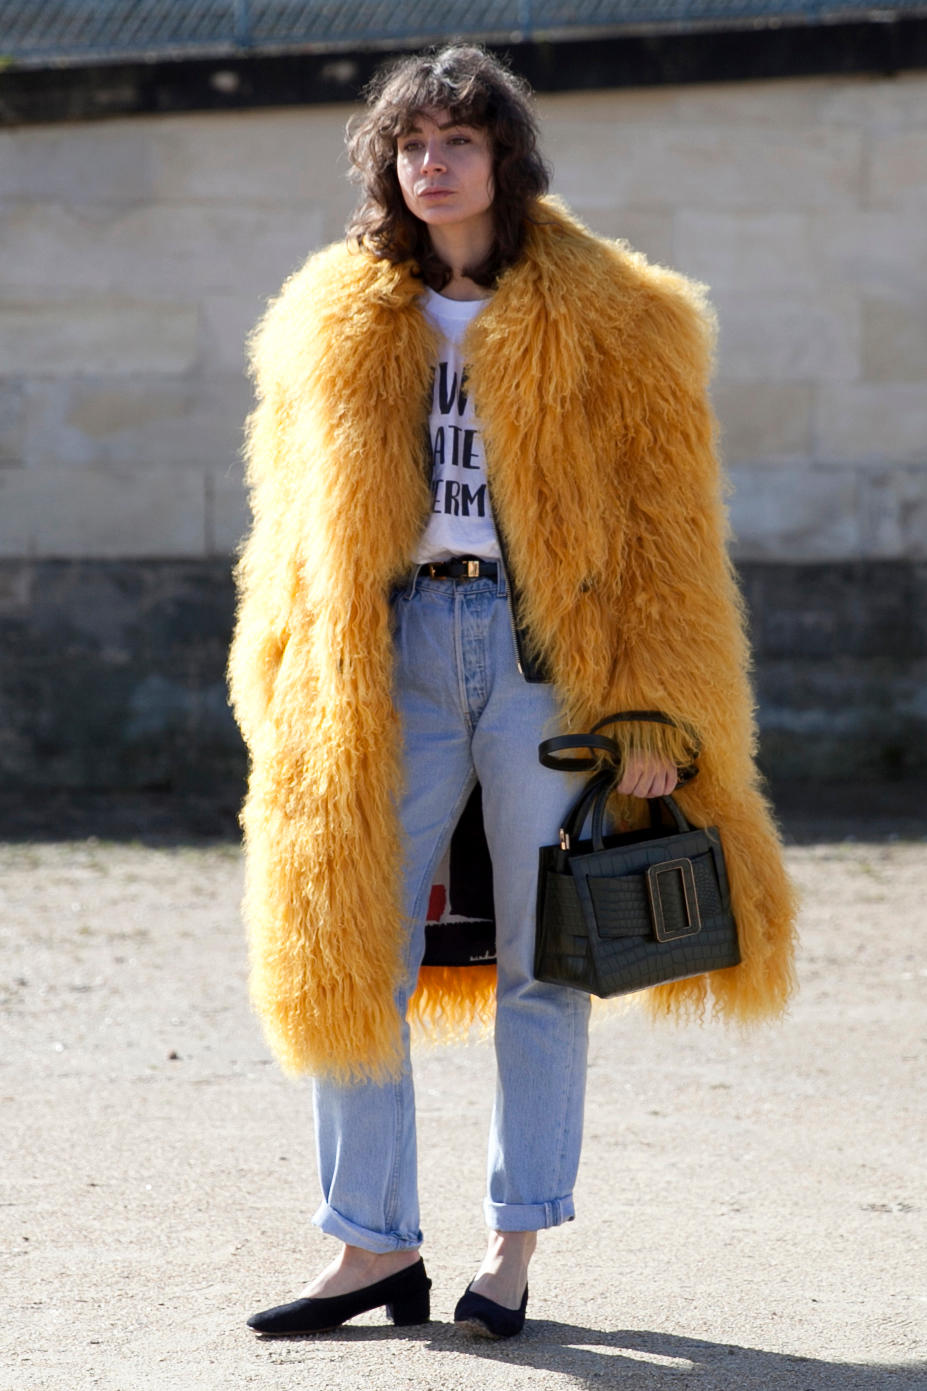 Irina Lakicevic On the street at Paris Fashion Week. Photo: Emily Malan/Fashionista.